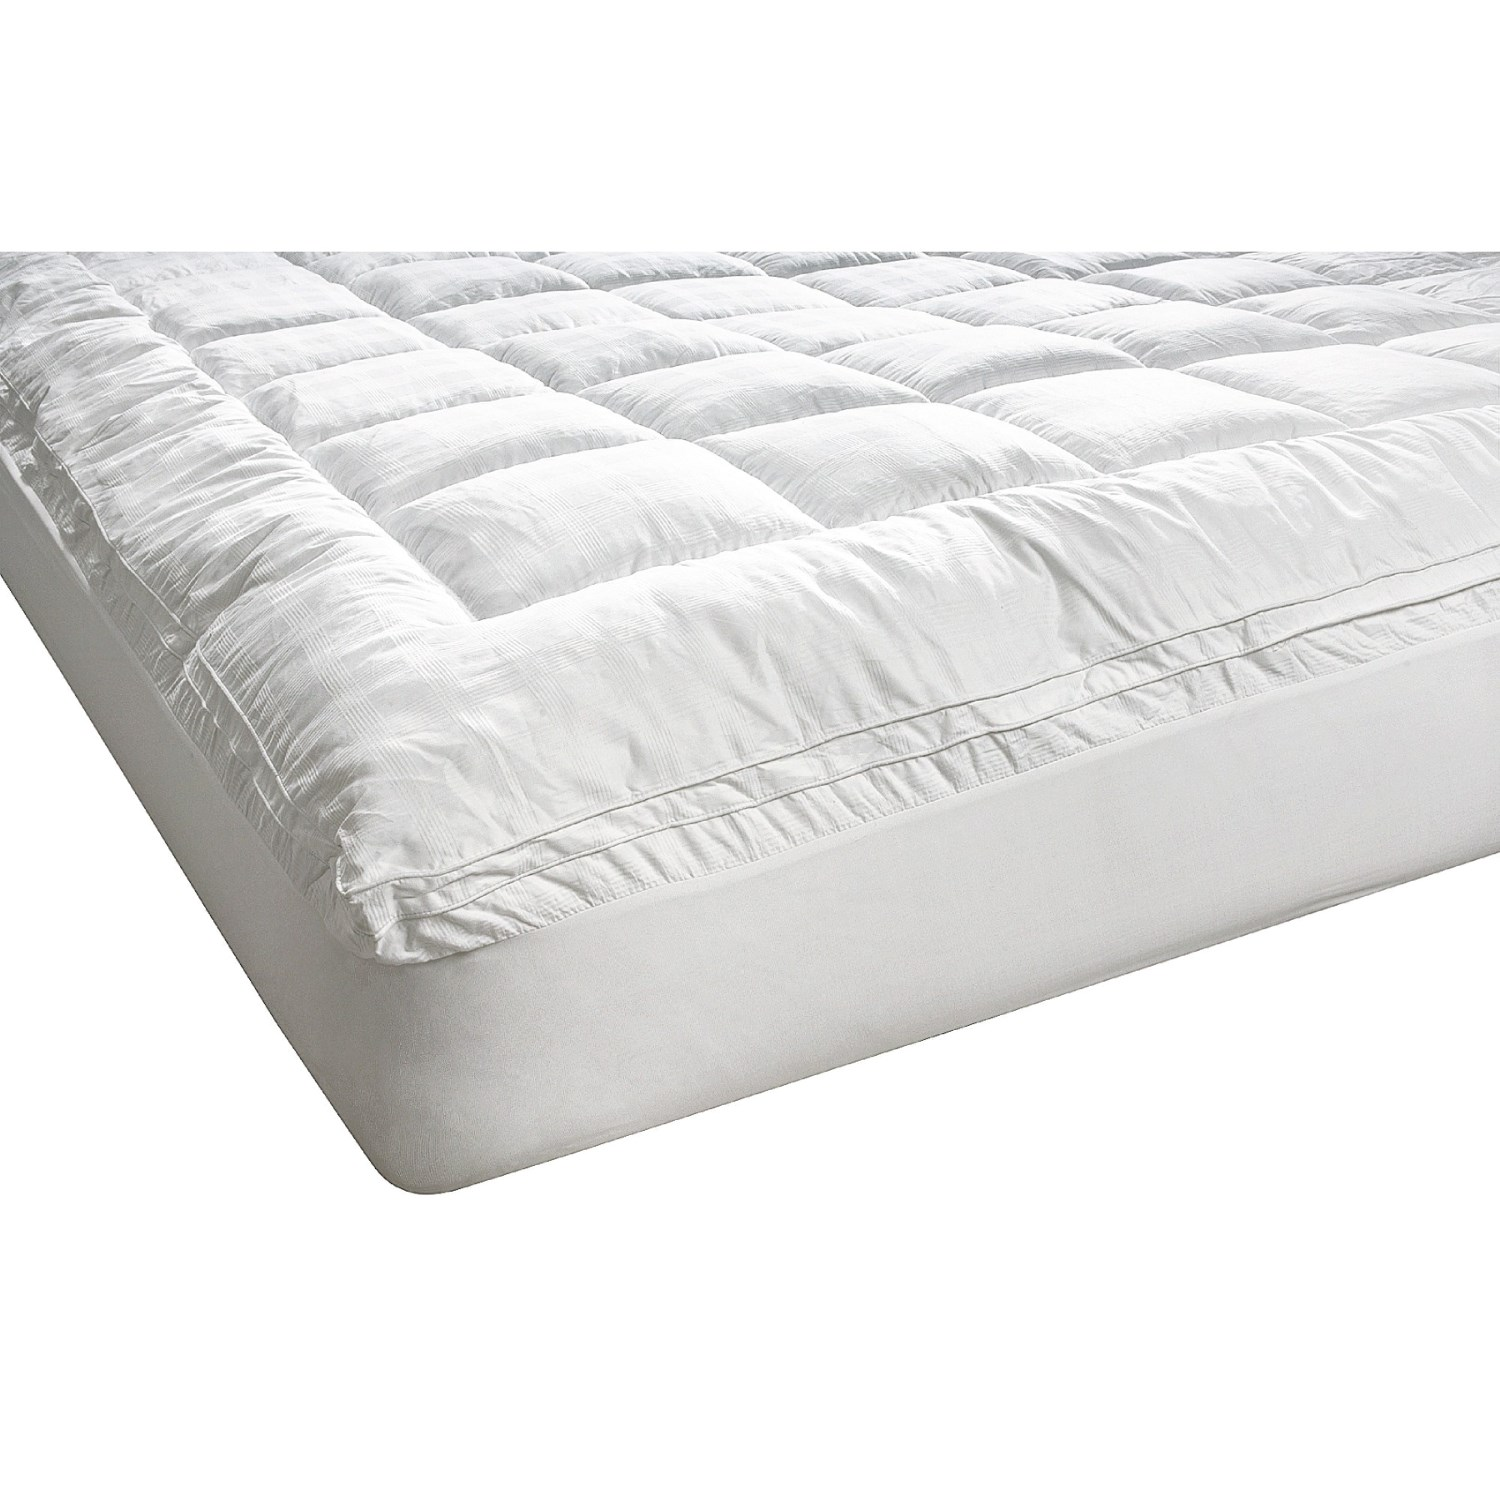 Melange Home Fashions Cloud Mattress Pad Queen Save 36